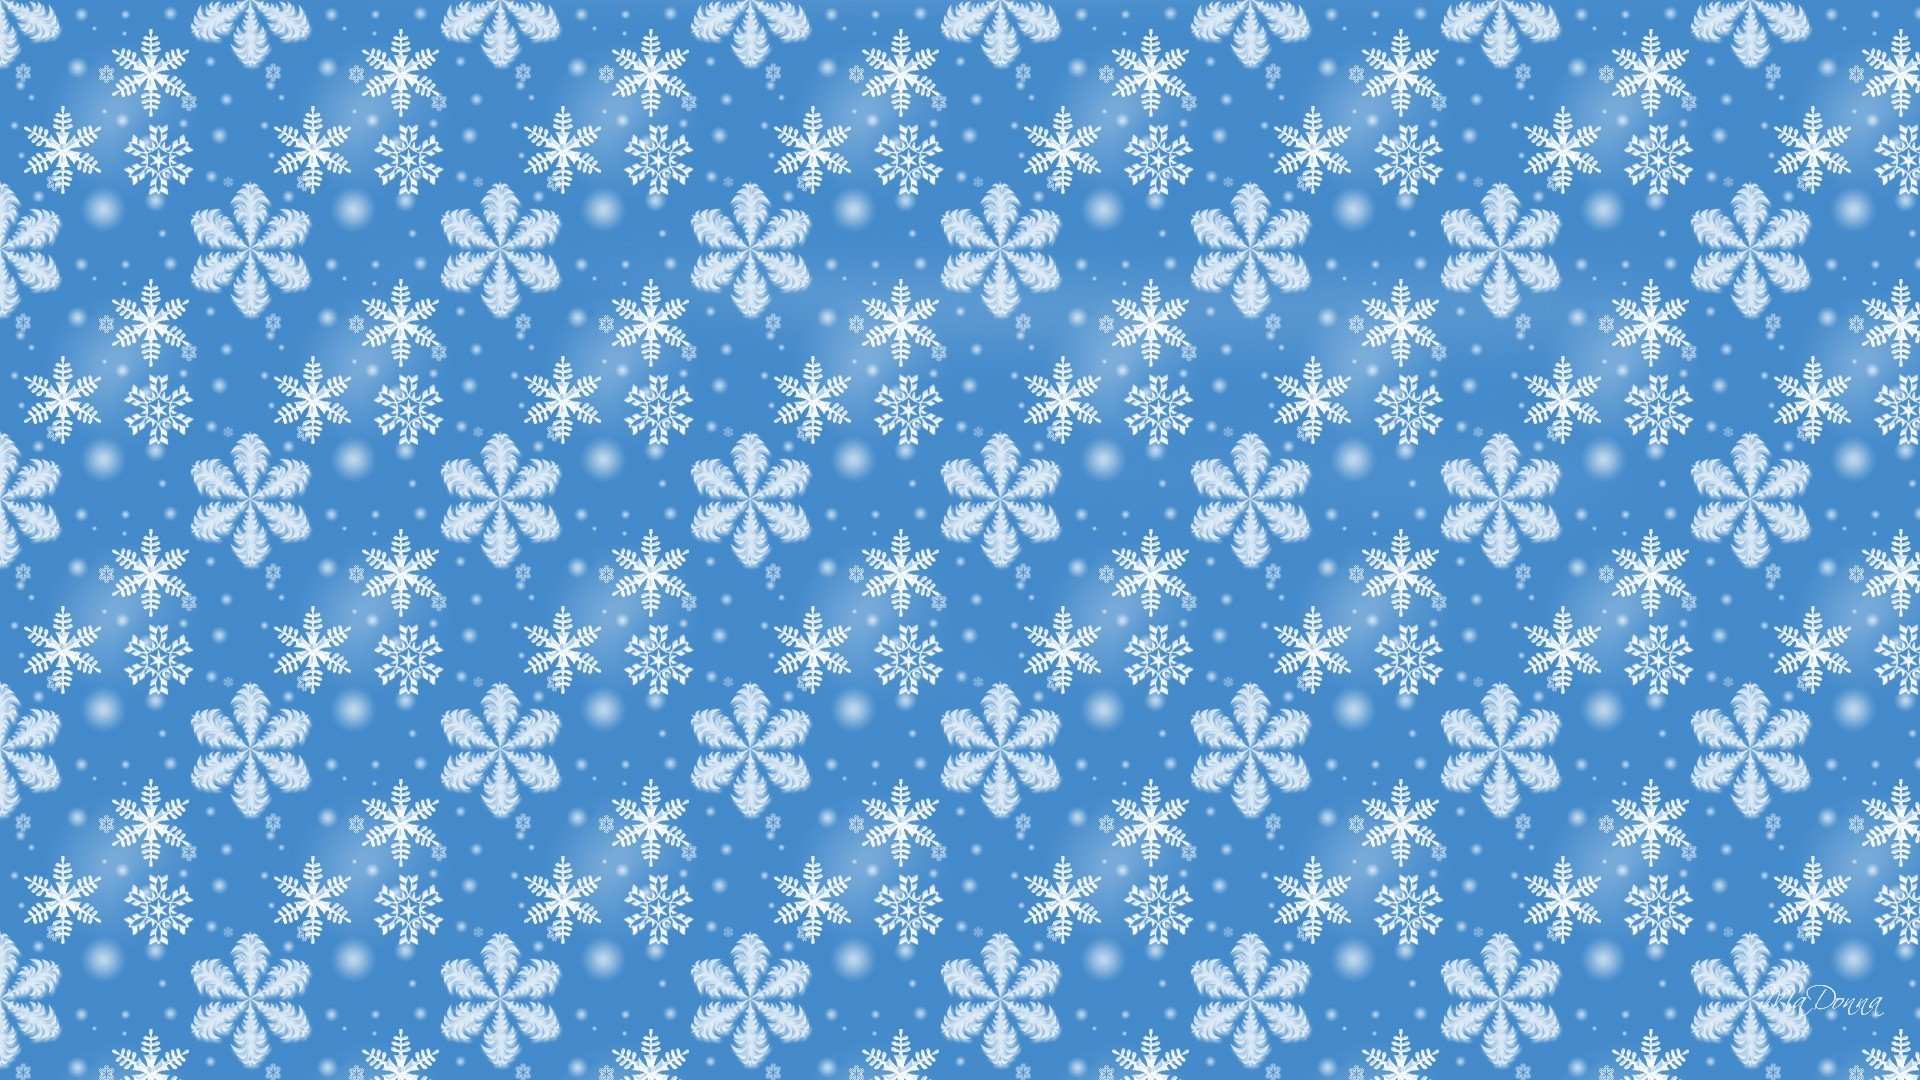 Res: 1920x1080, Blue Winter Snow Christmas Snowflakes Simple Frosty Wallpaper Backgrounds -